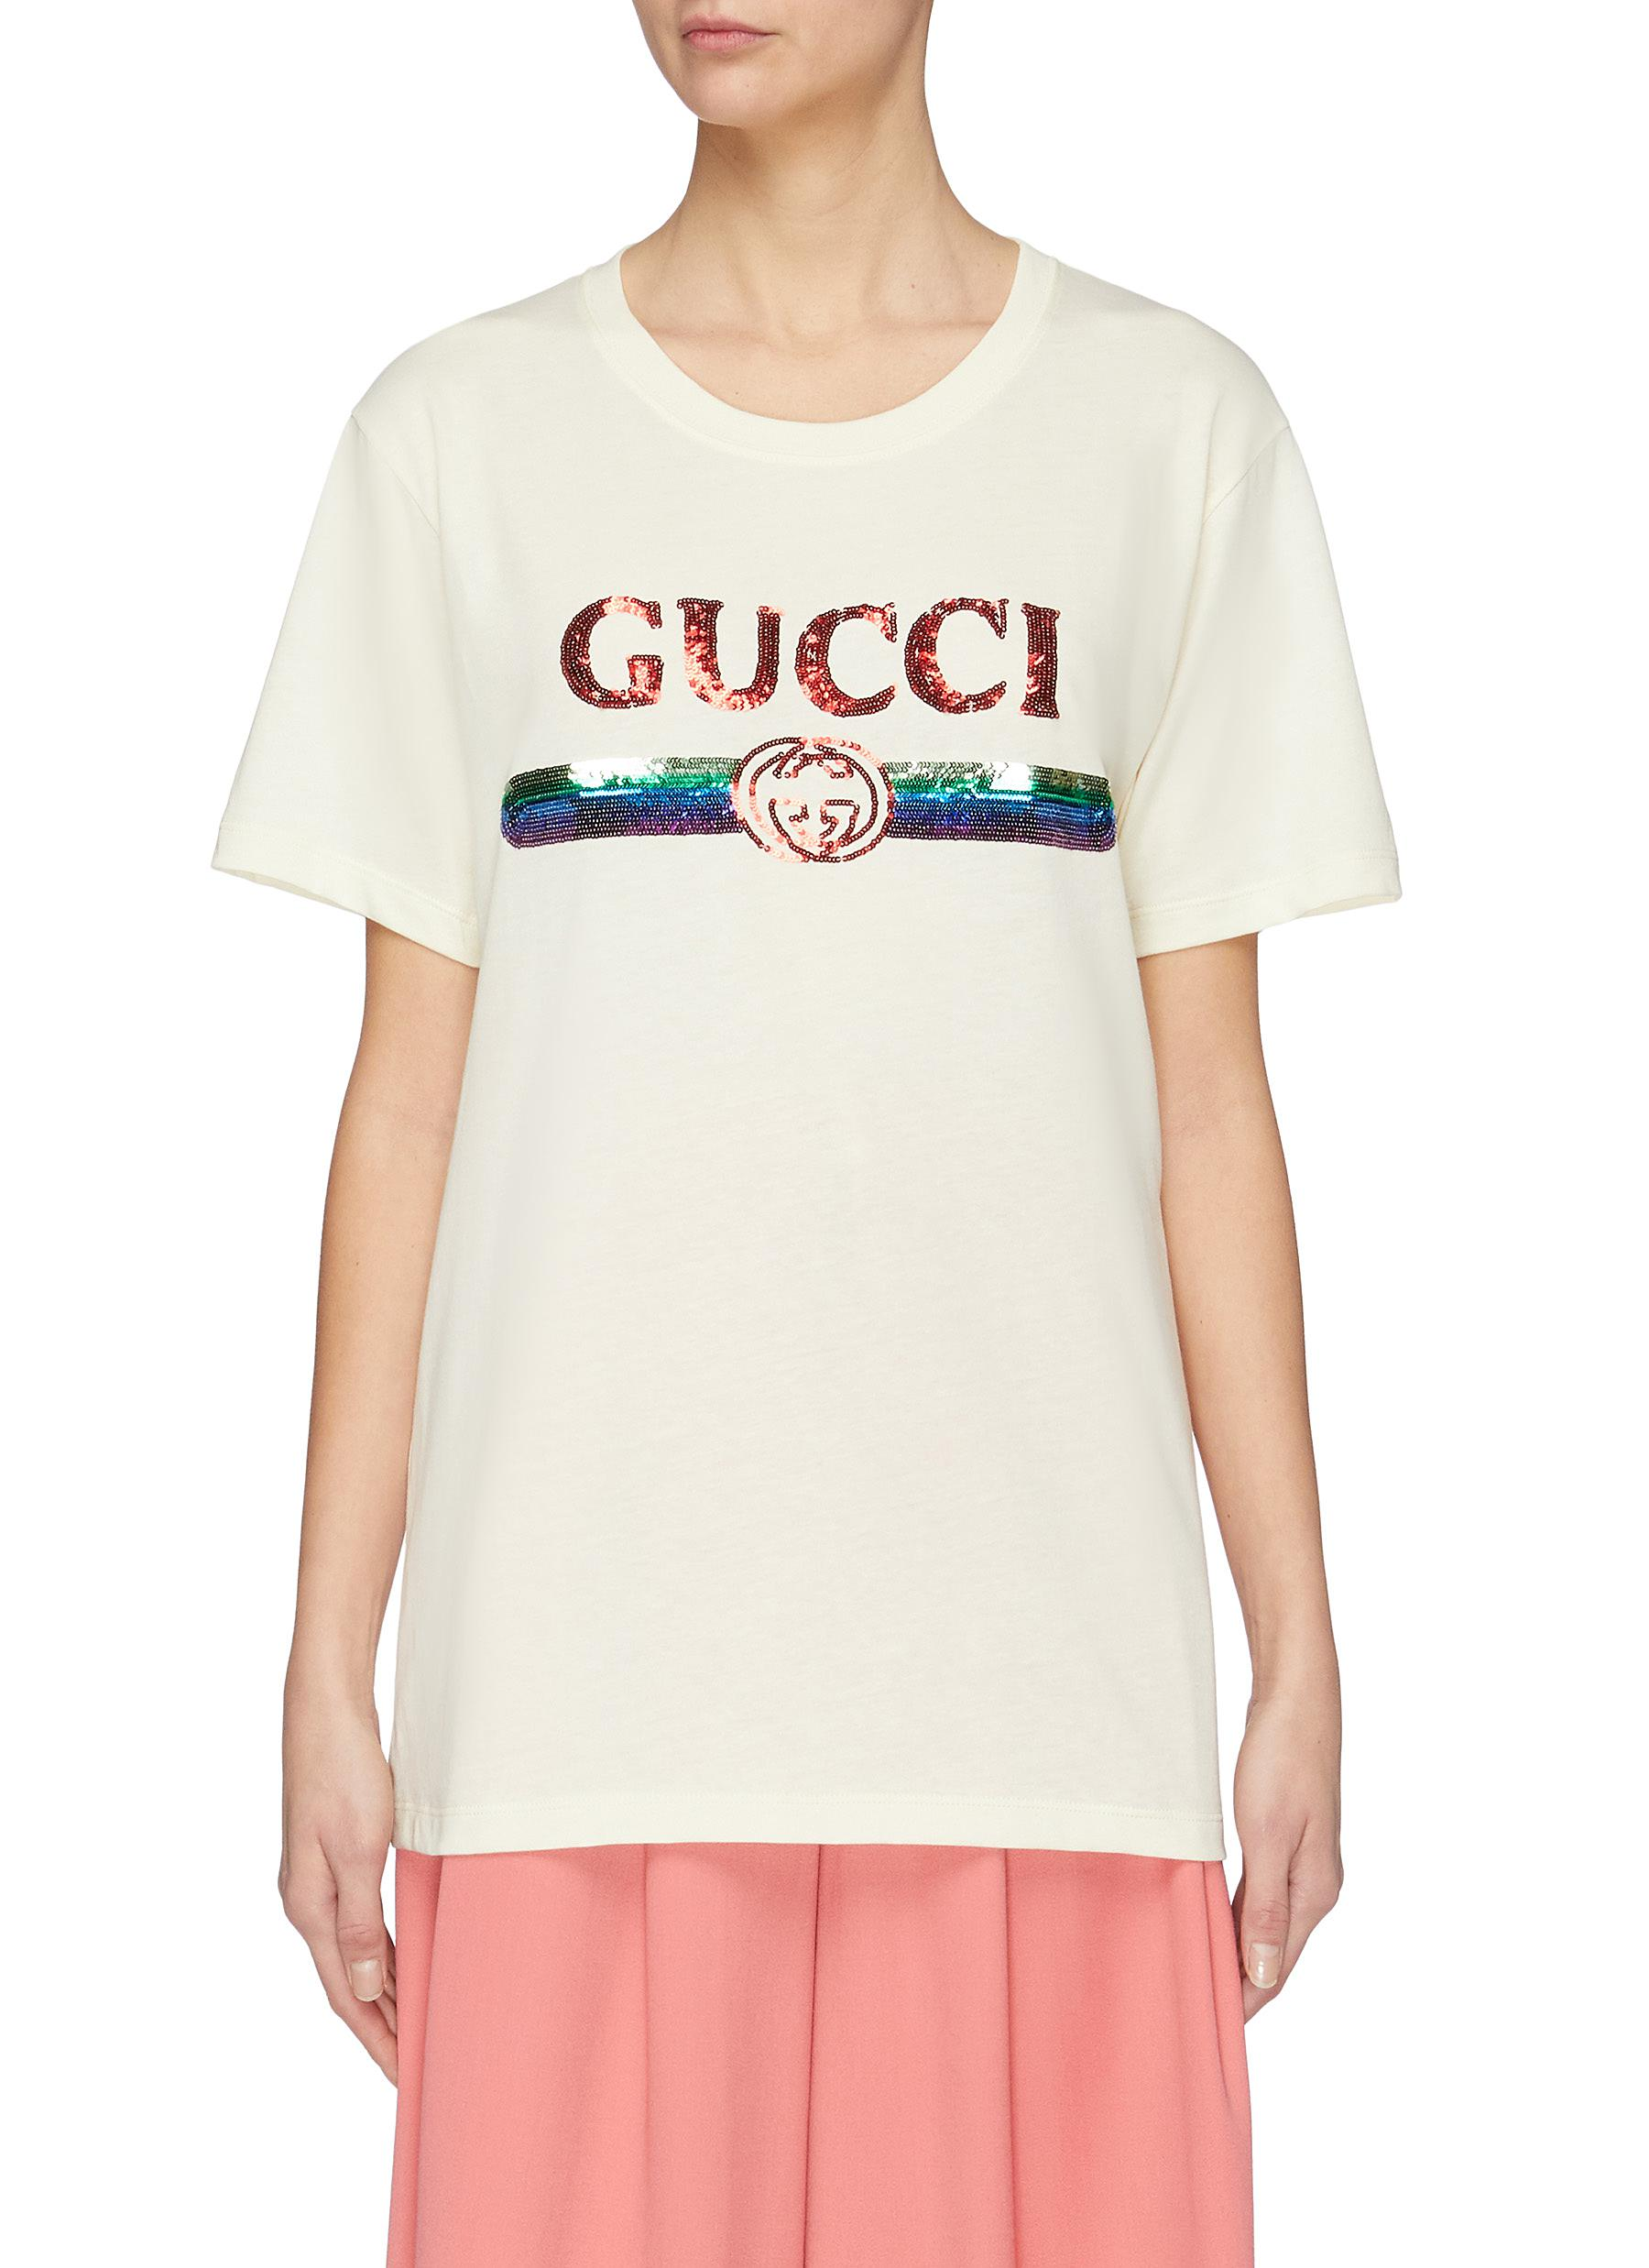 622722d45e0 Main View - Click To Enlarge - GUCCI - Sequin logo oversized T-shirt